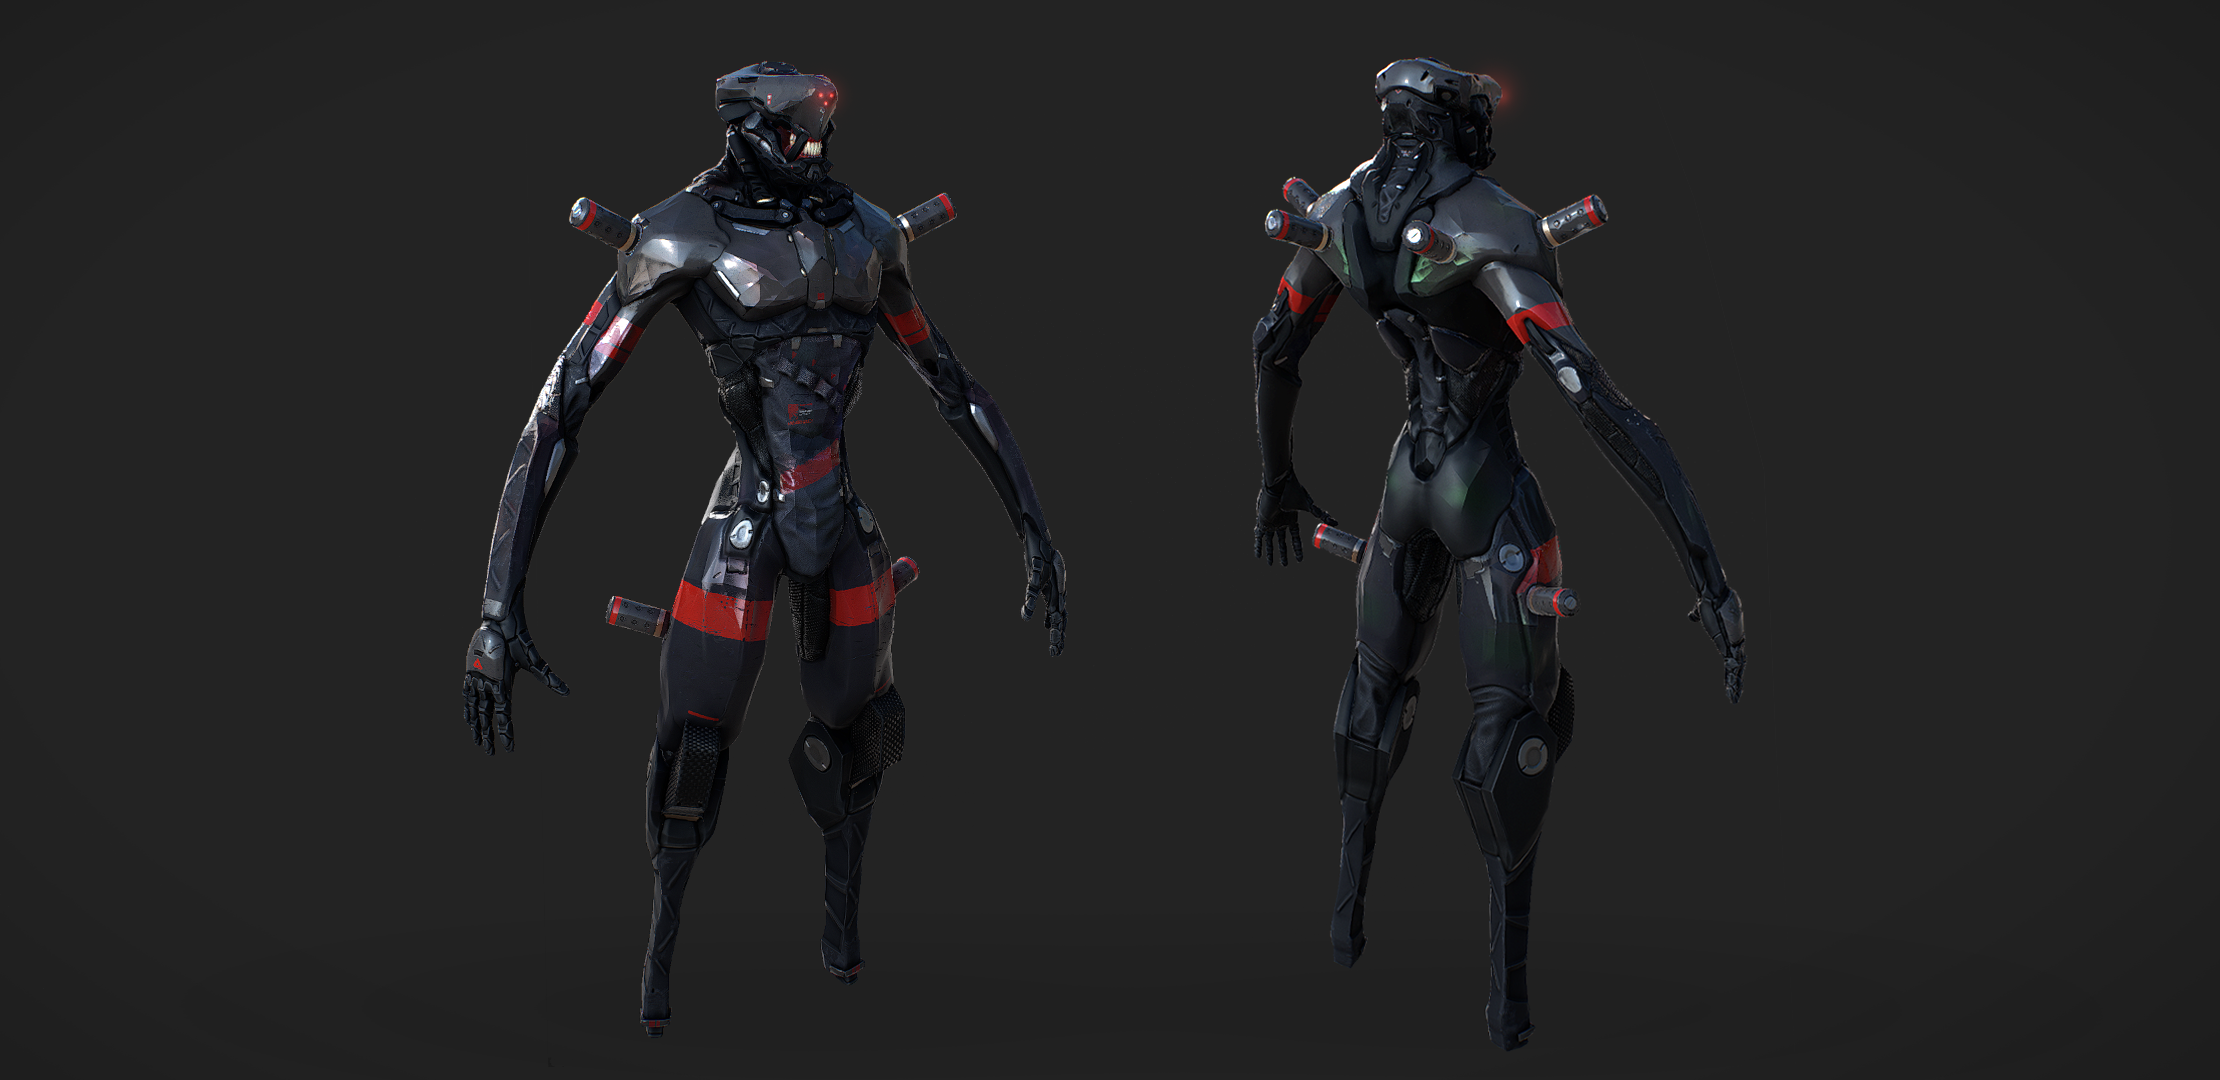 A render of The Cure's cyborg minion completed by CraveFX.